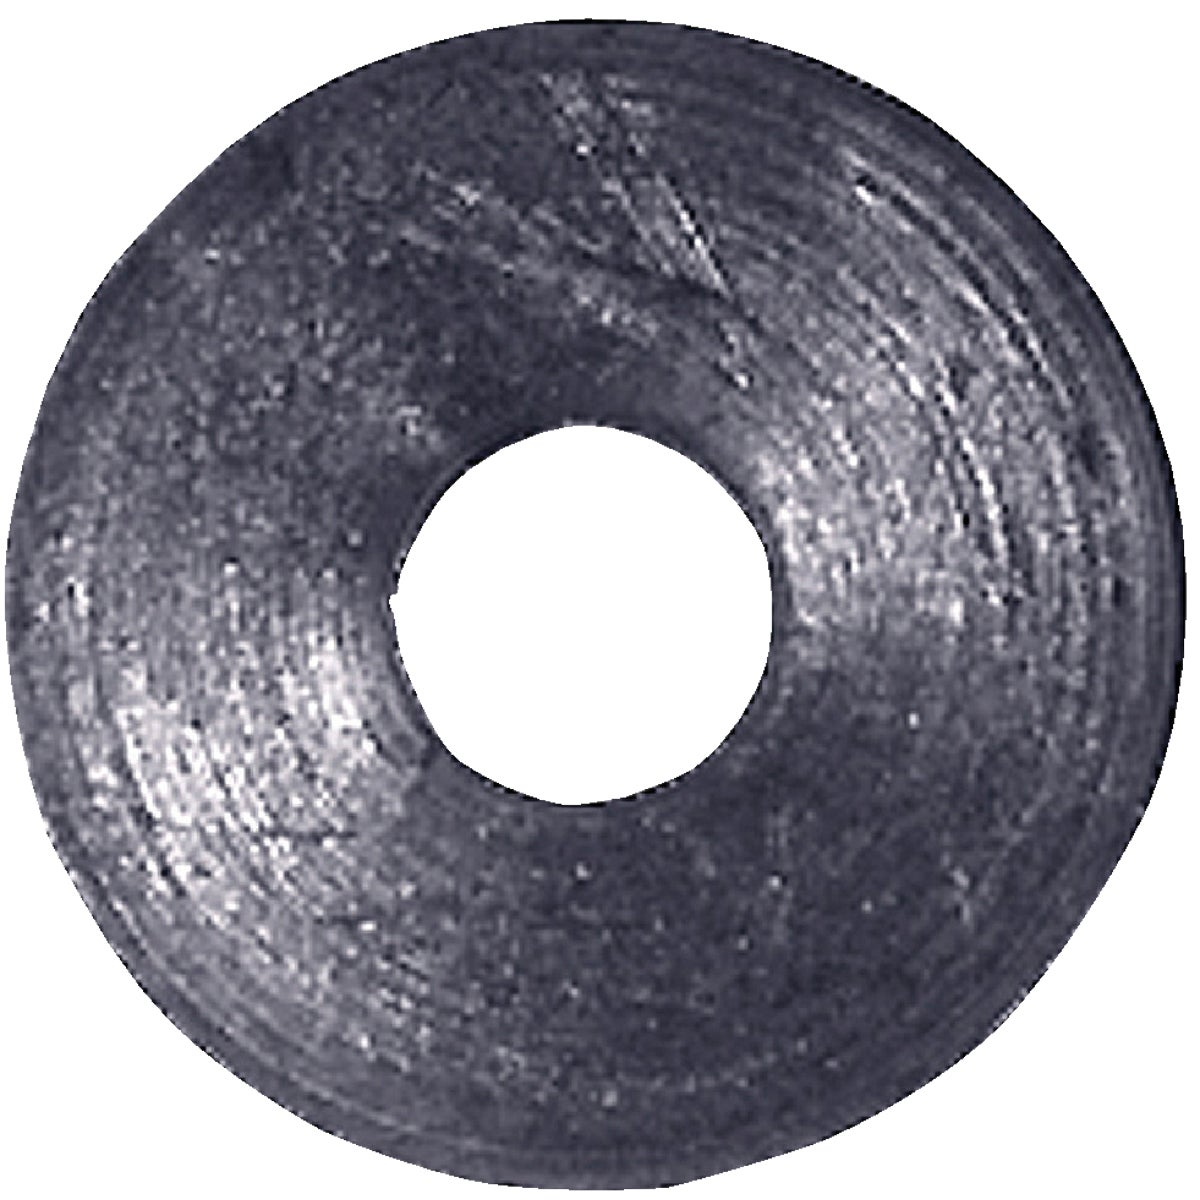 1/4L FLAT WASHER - 35065B by Danco Perfect Match